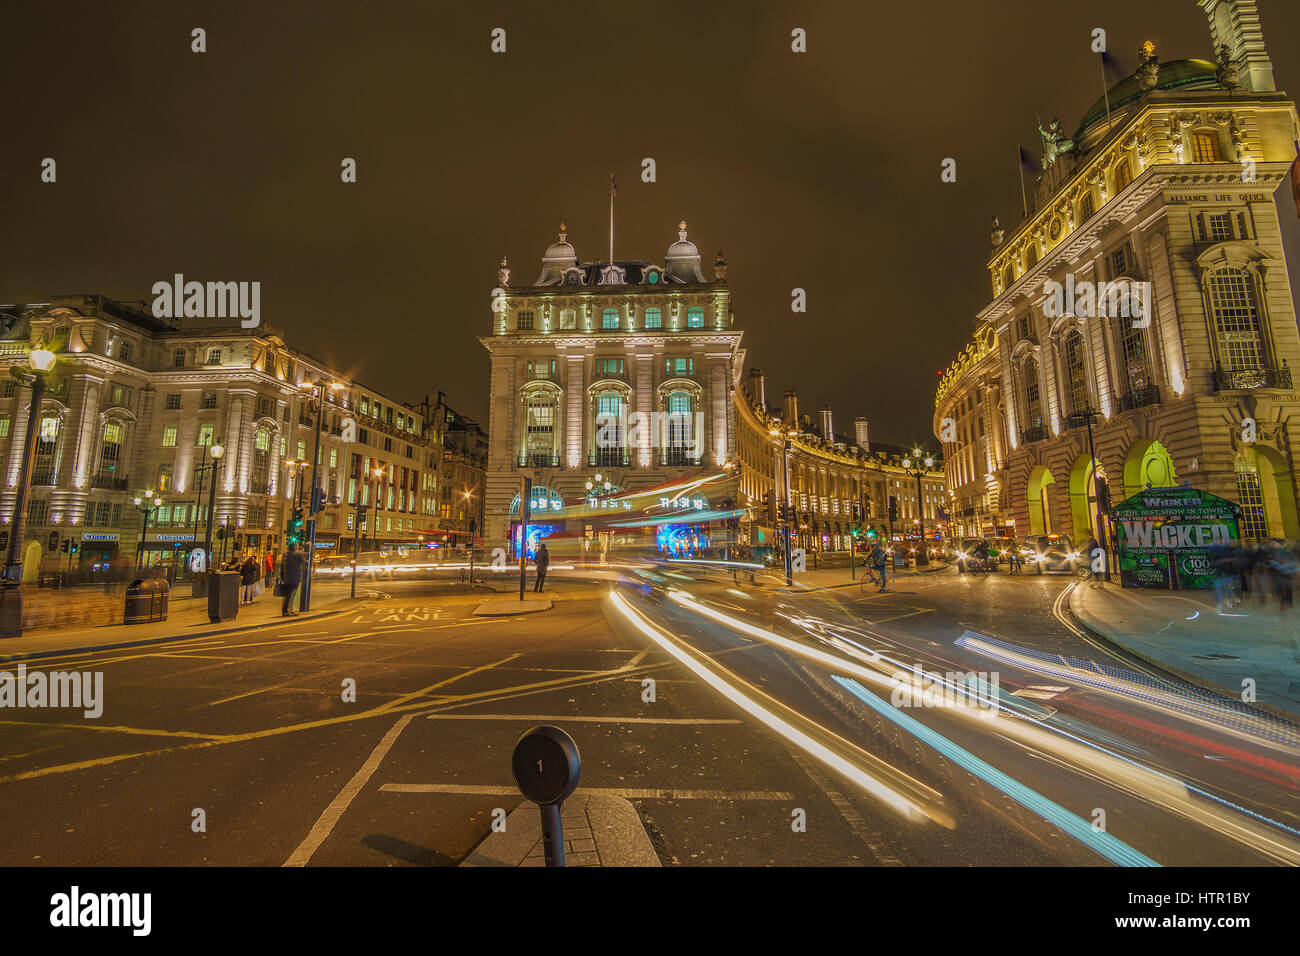 Urban view of london Picadilly Circus at night. long exposure hdr street photography in London, United Kingdom. - Stock Image